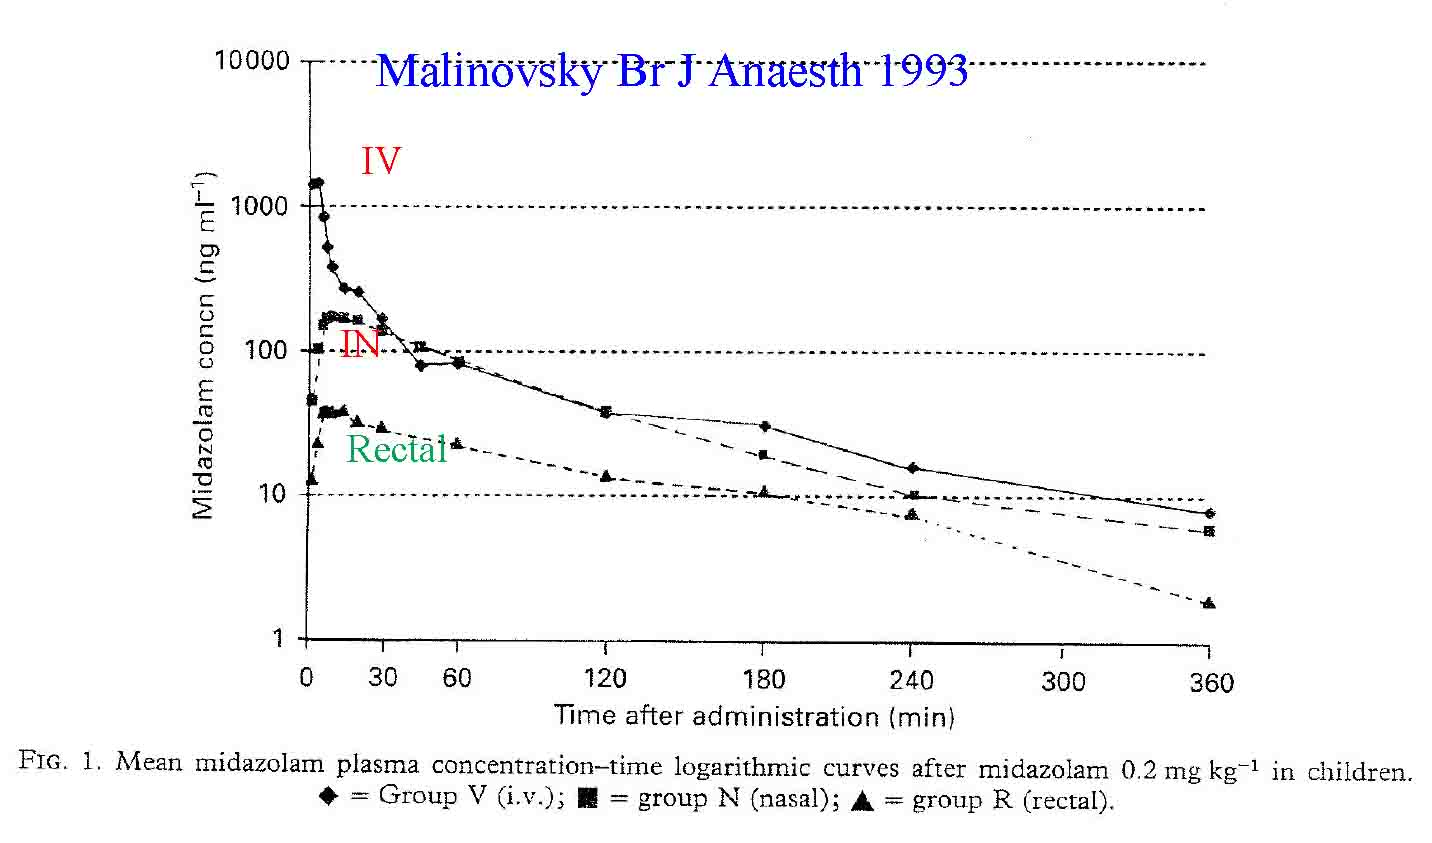 Malinovsky 1993 data demonstrating peak levels of midazoalm when given via the intravenous, intranasal and rectal routes